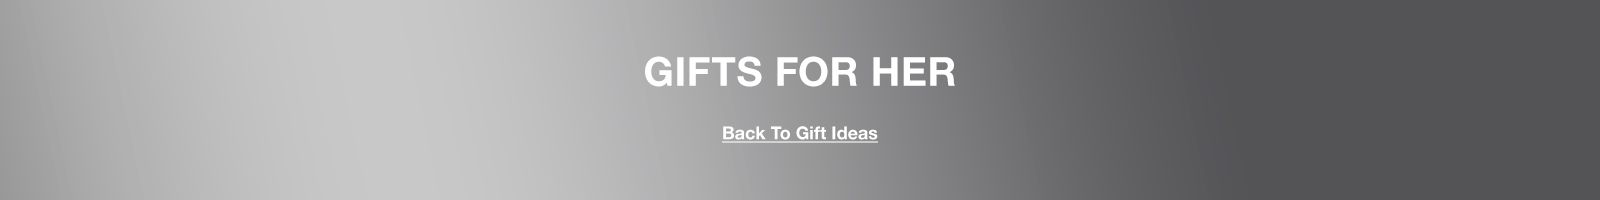 Gifts For Her, Back to Gift Ideas